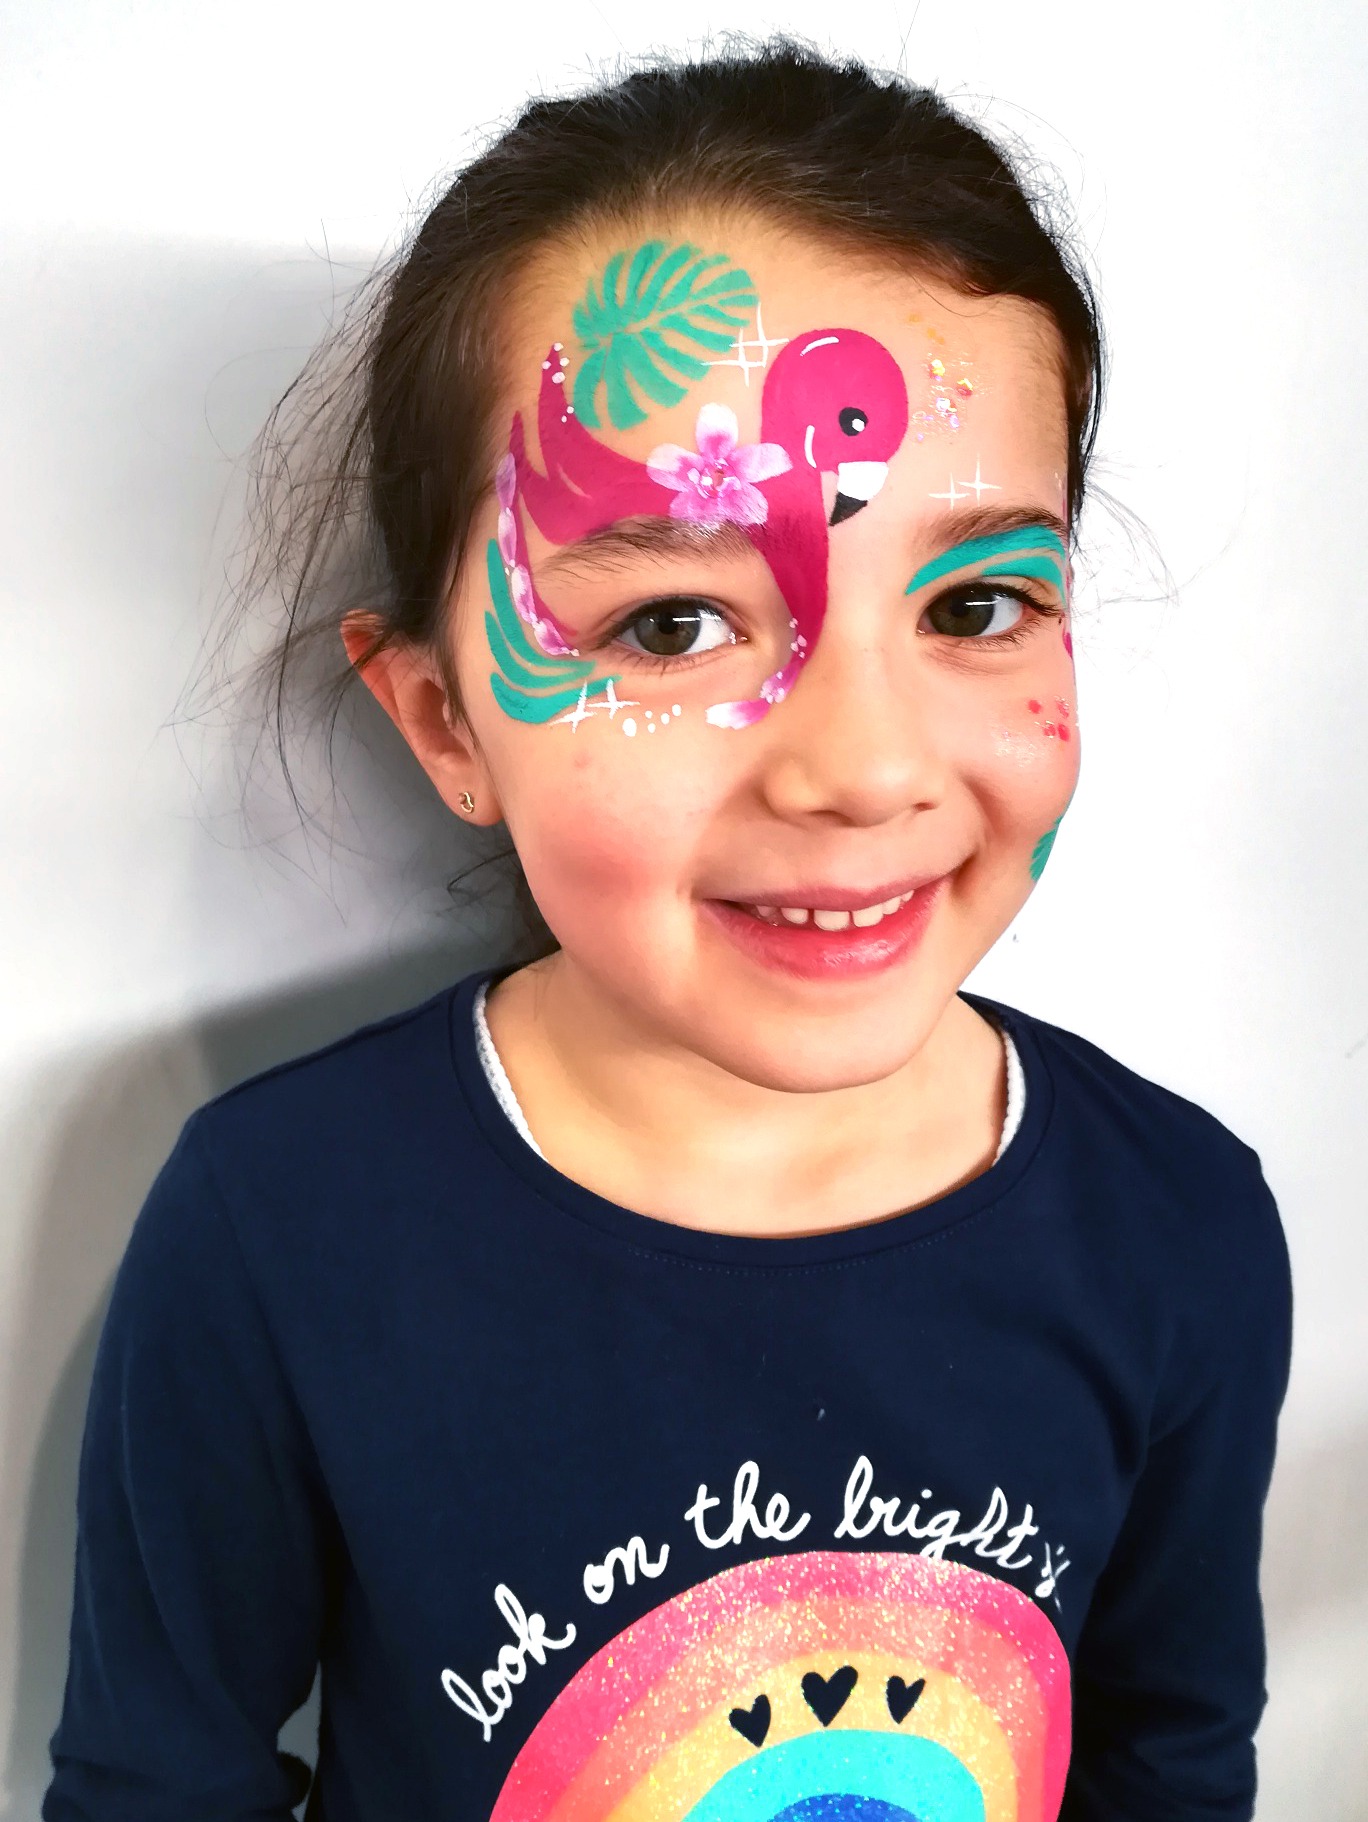 Maquillage enfant flamand rose facepainting